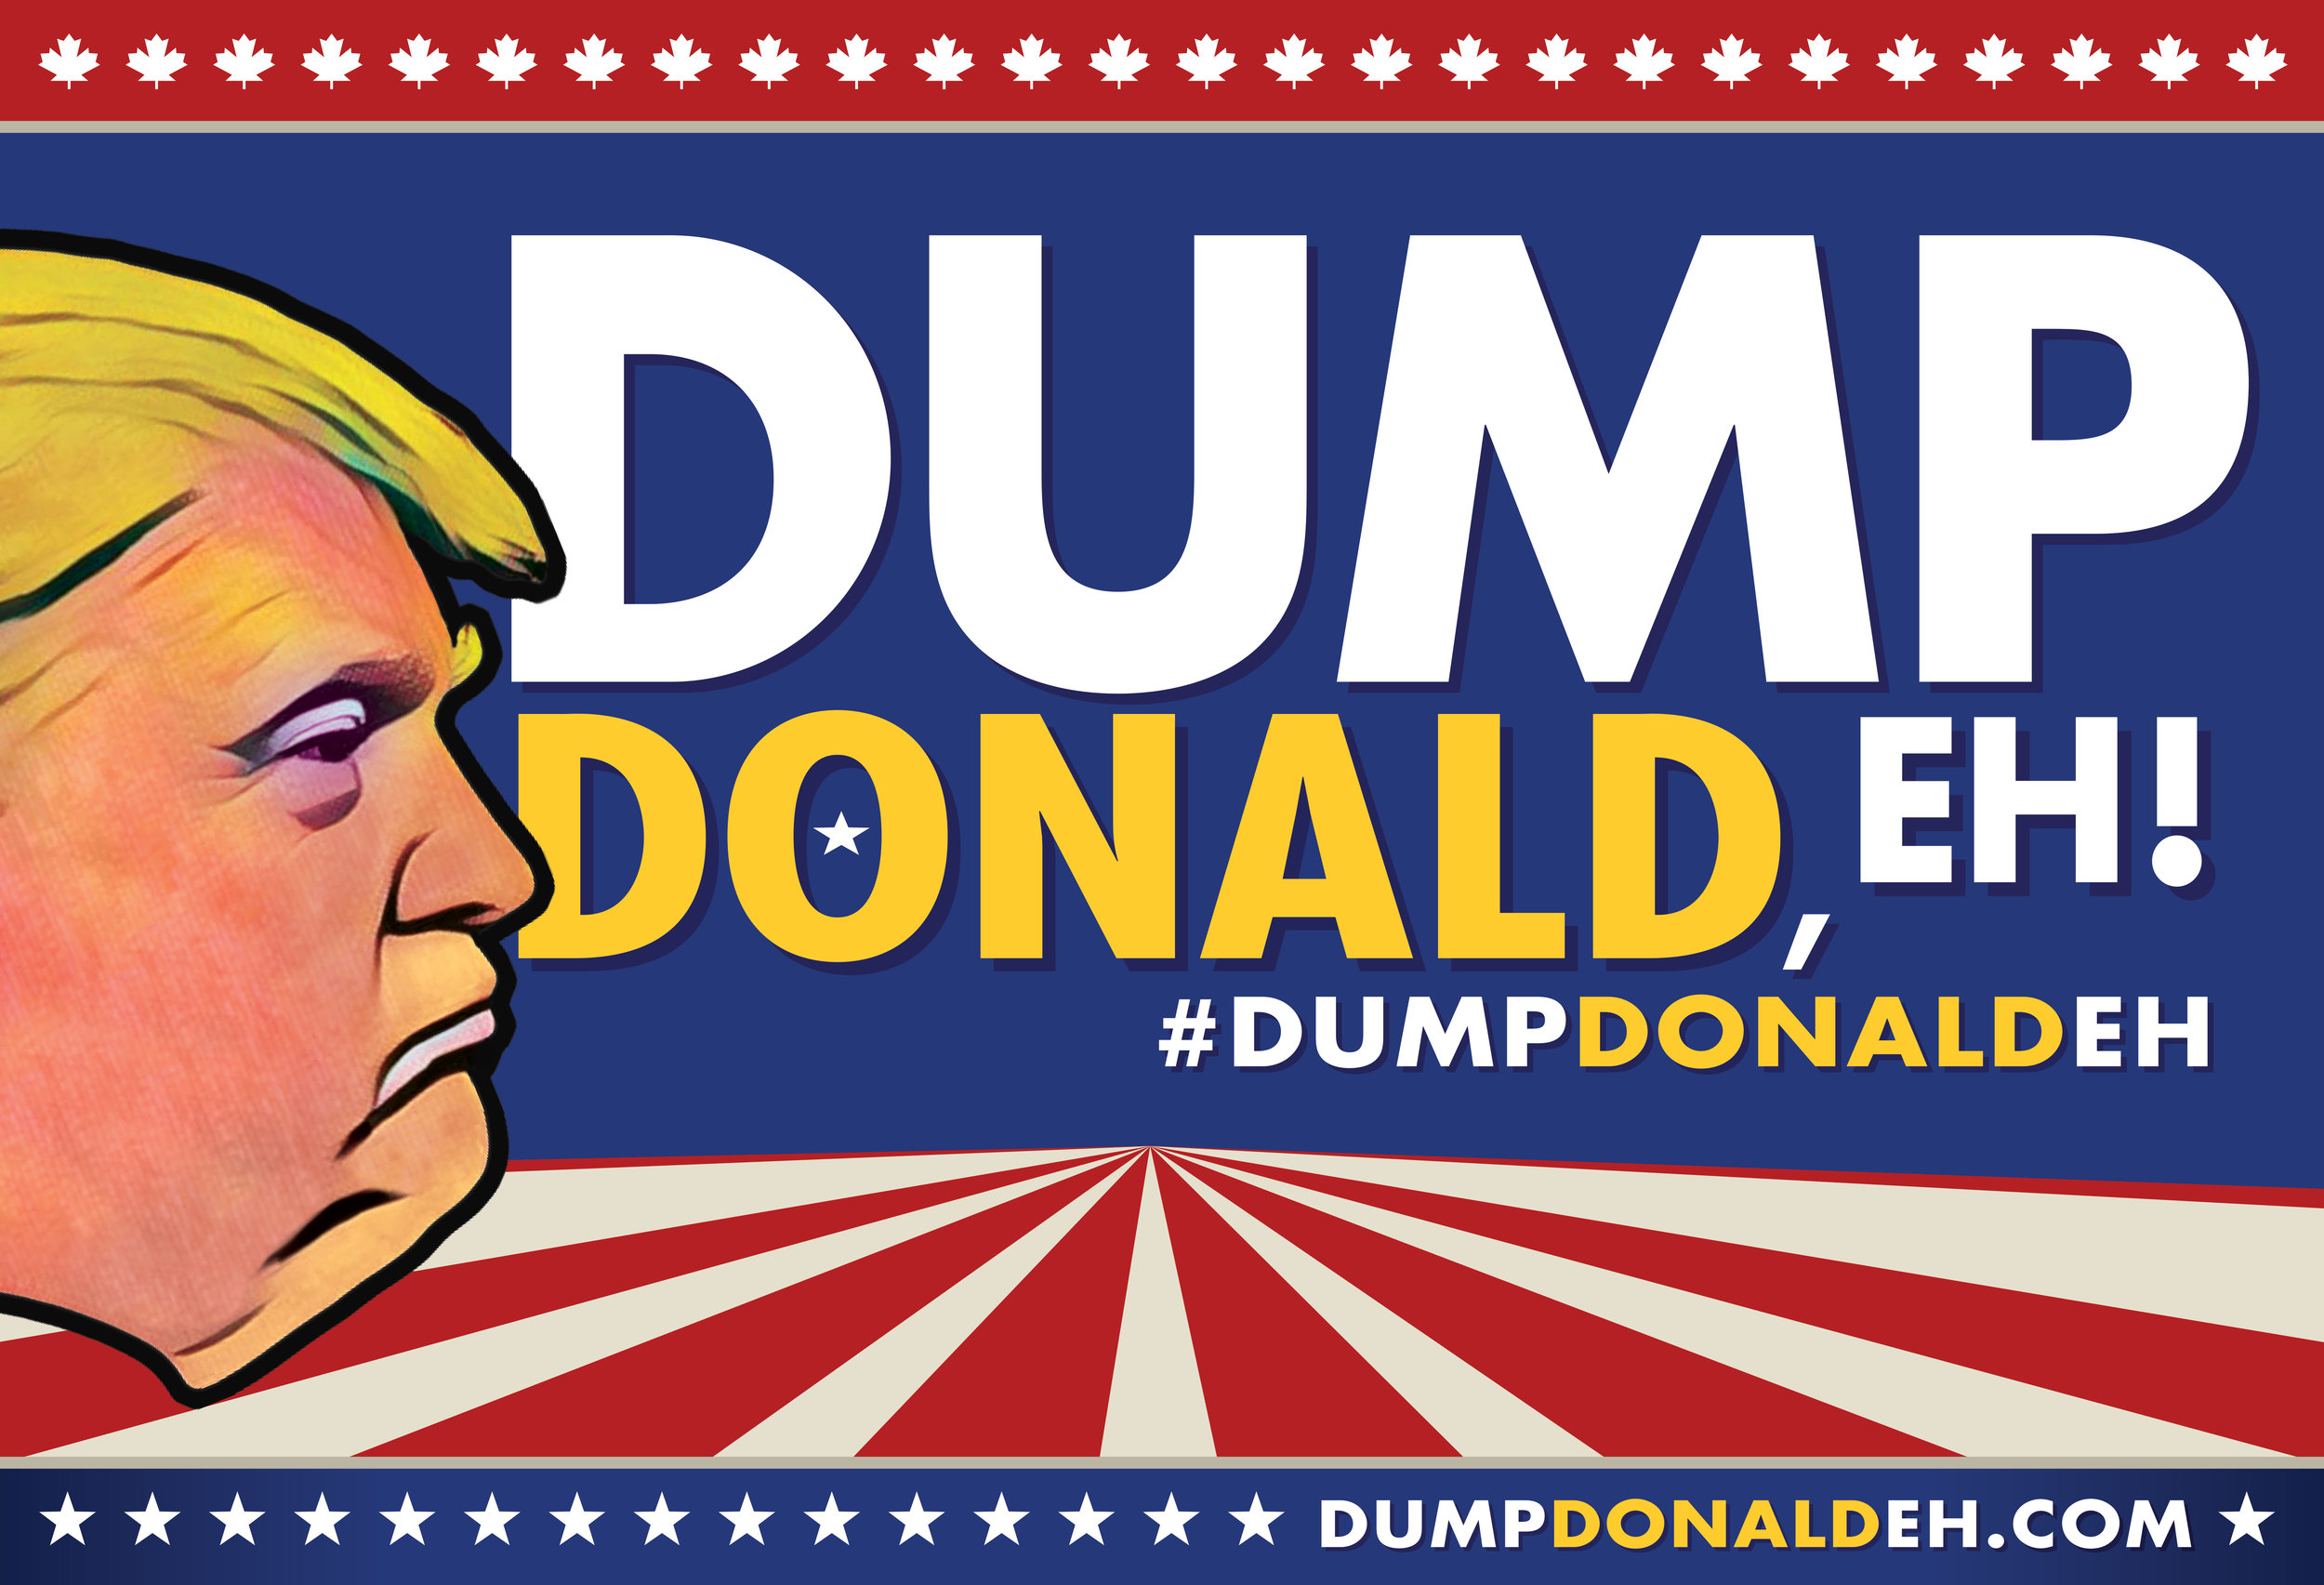 The Dump Donald, EH! lawn sign